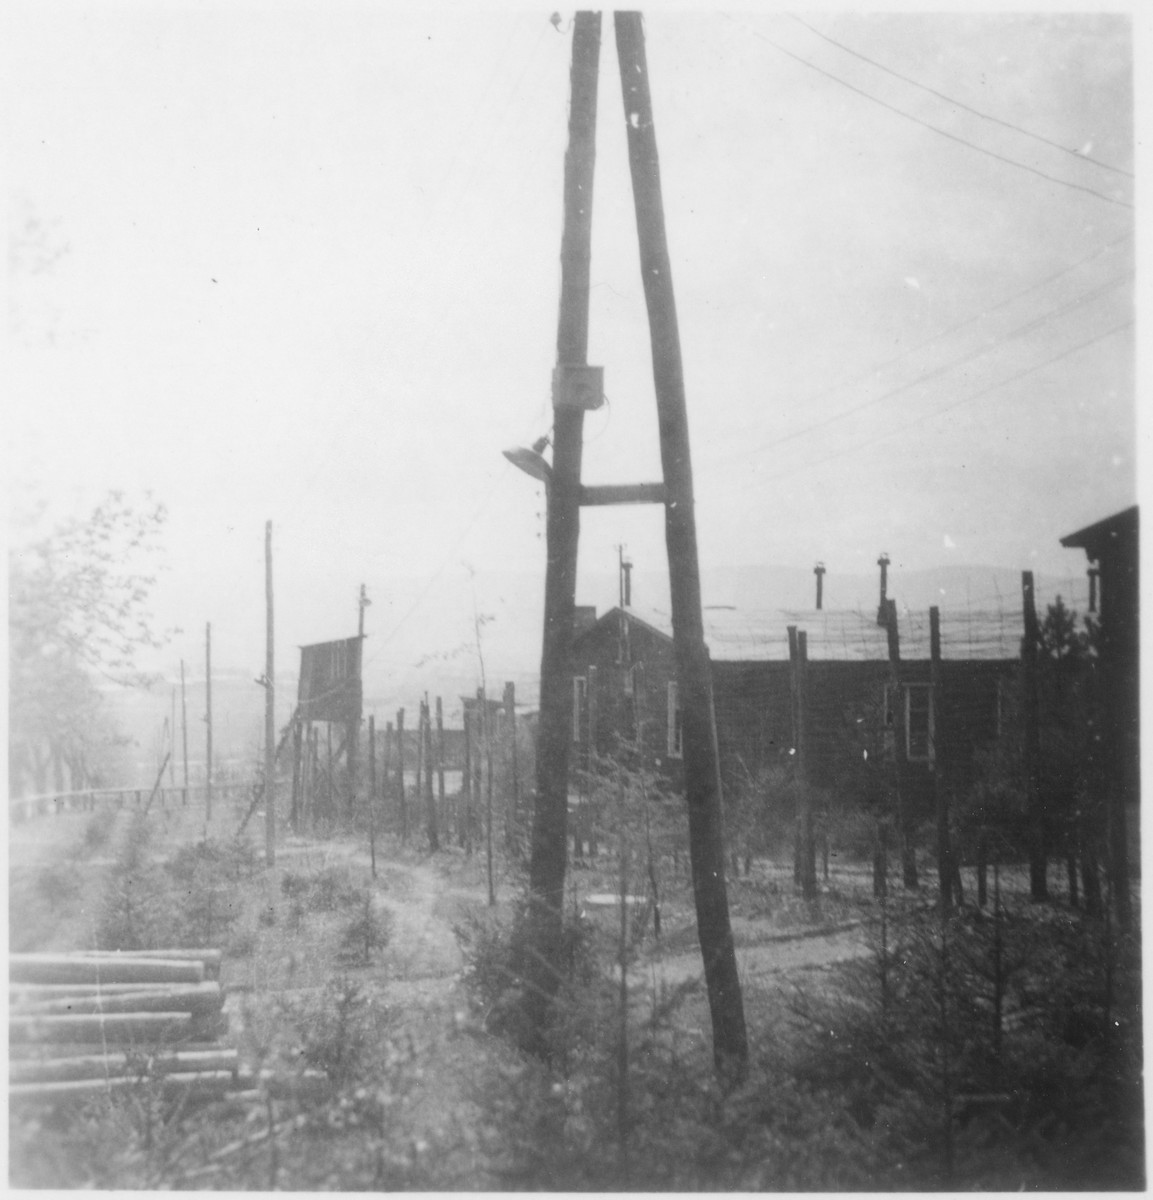 View of a guard tower and the barbed-wire fence that enclosed the Ohrdruf concentration camp.